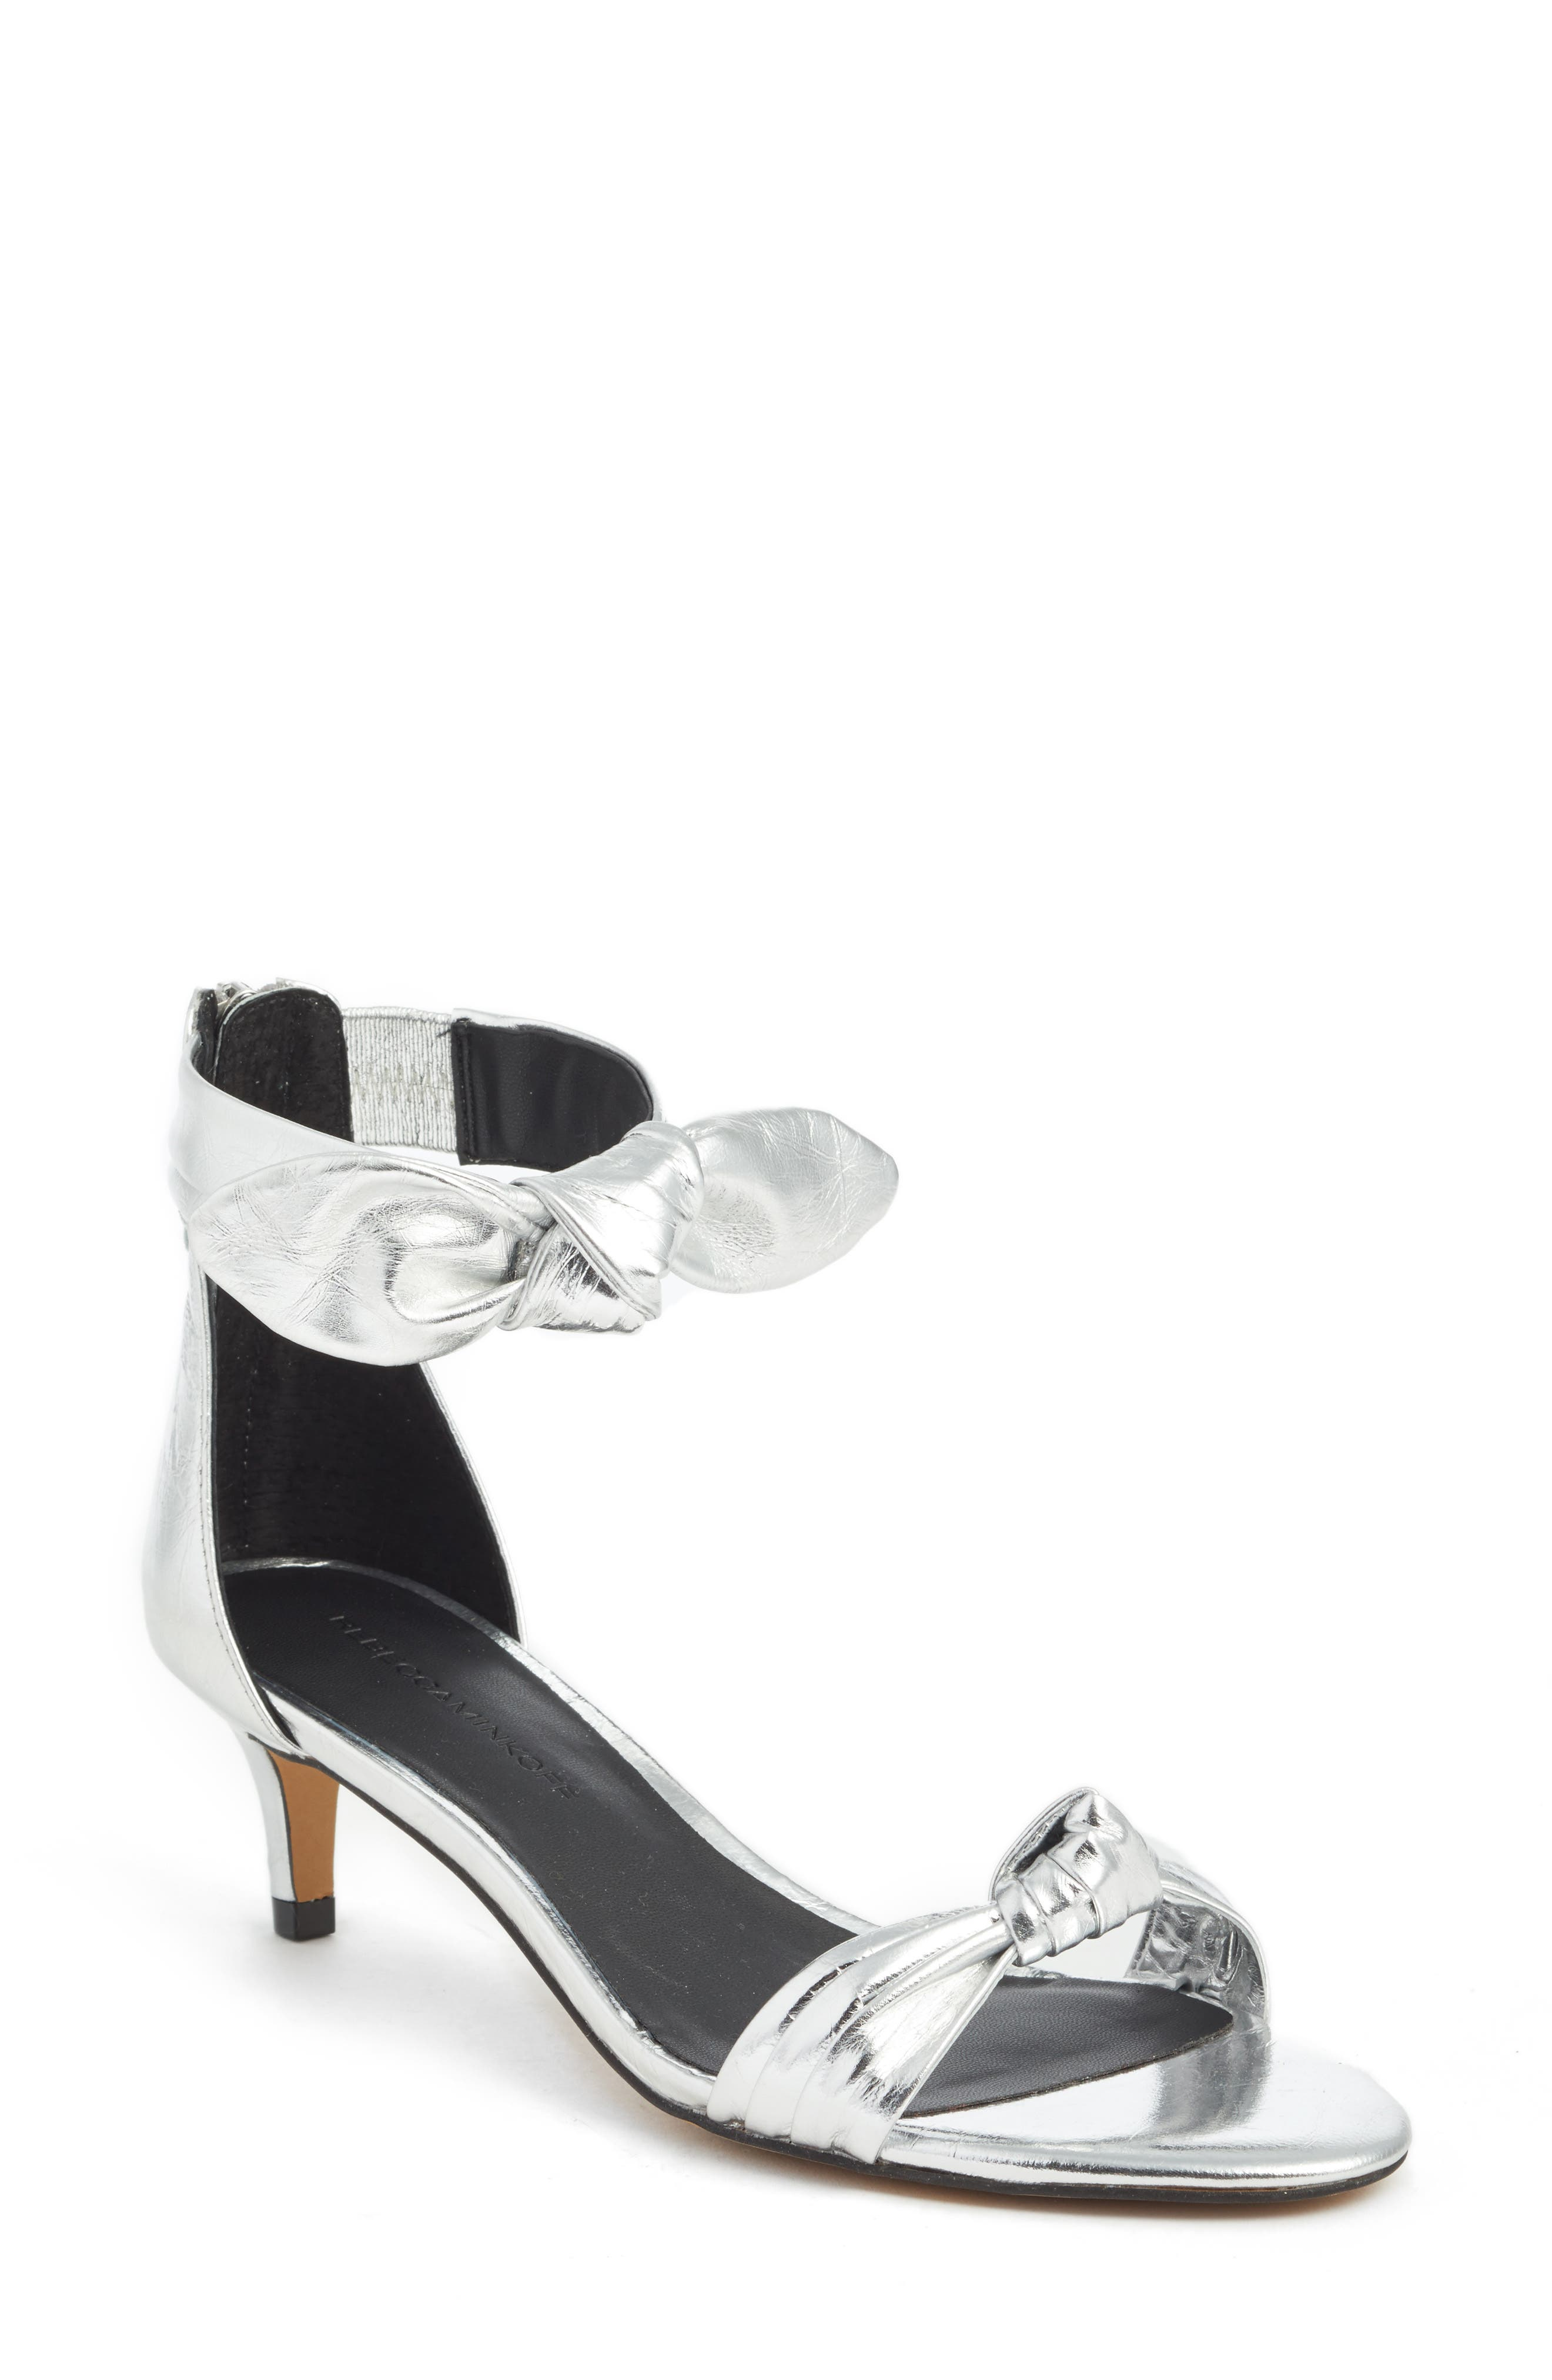 Kaley Knotted Kitten Heel Sandal,                         Main,                         color, Silver Metallic Leather